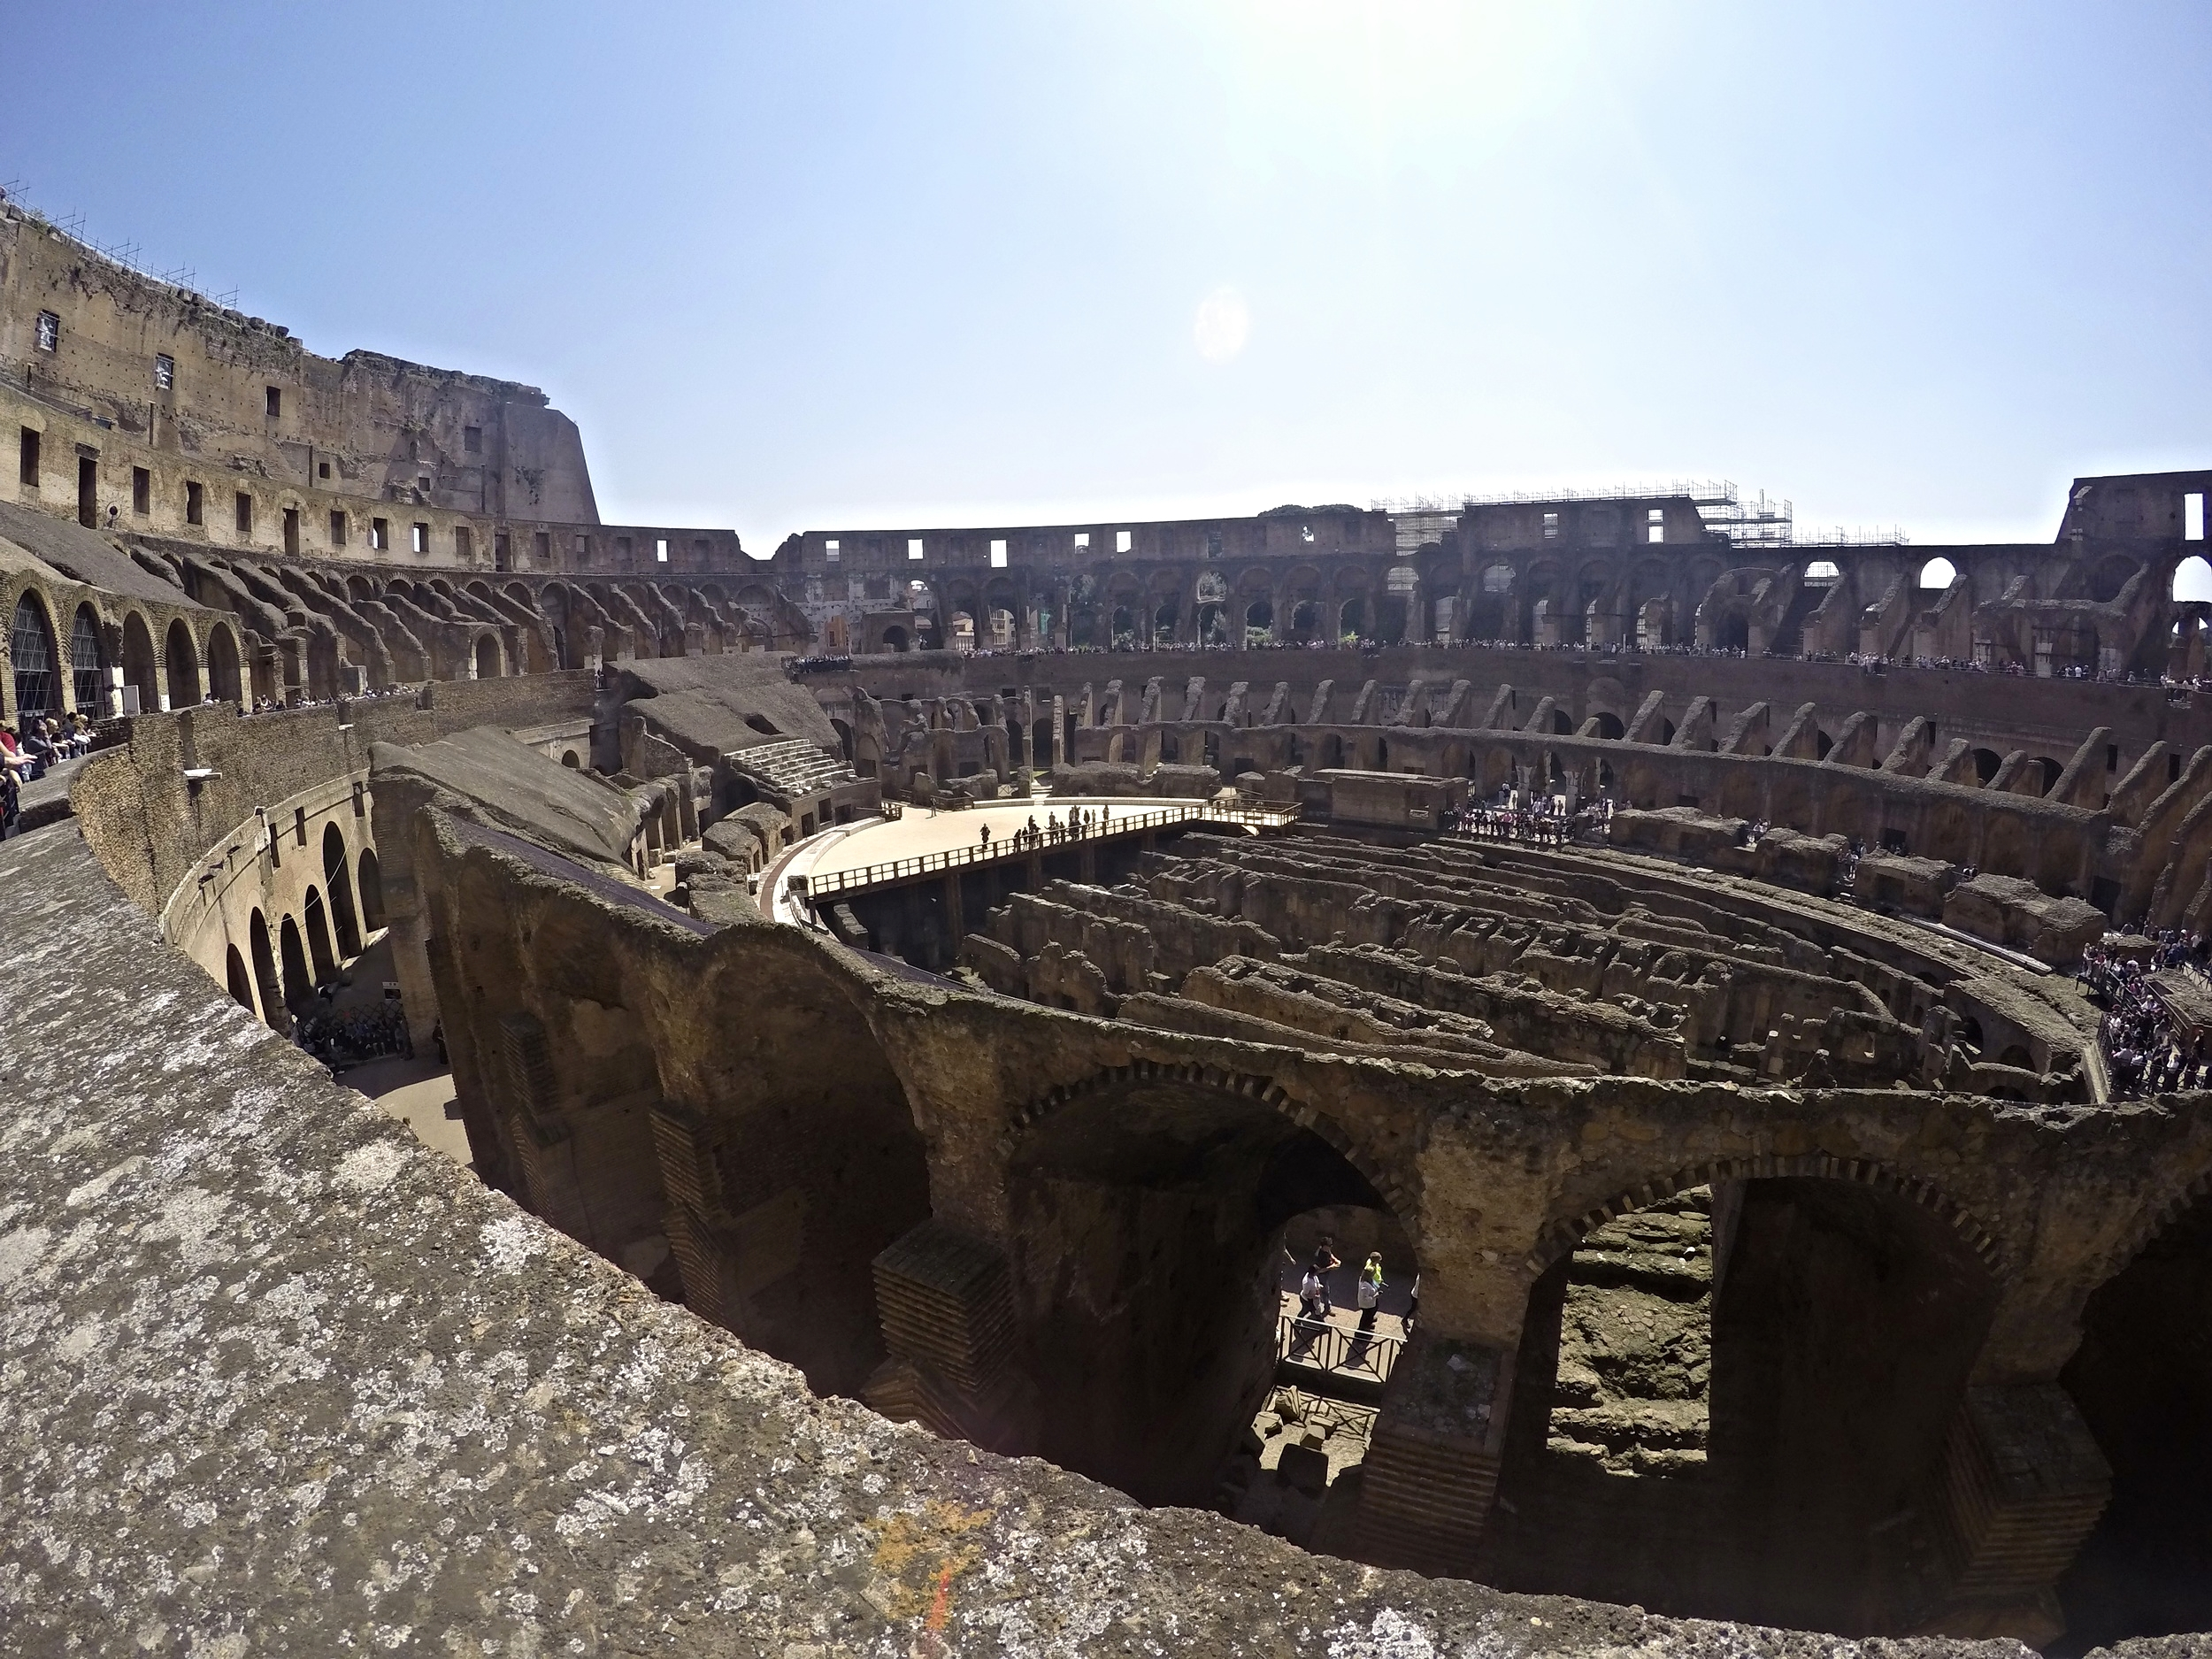 Picture: The Colosseum, Rome 2015